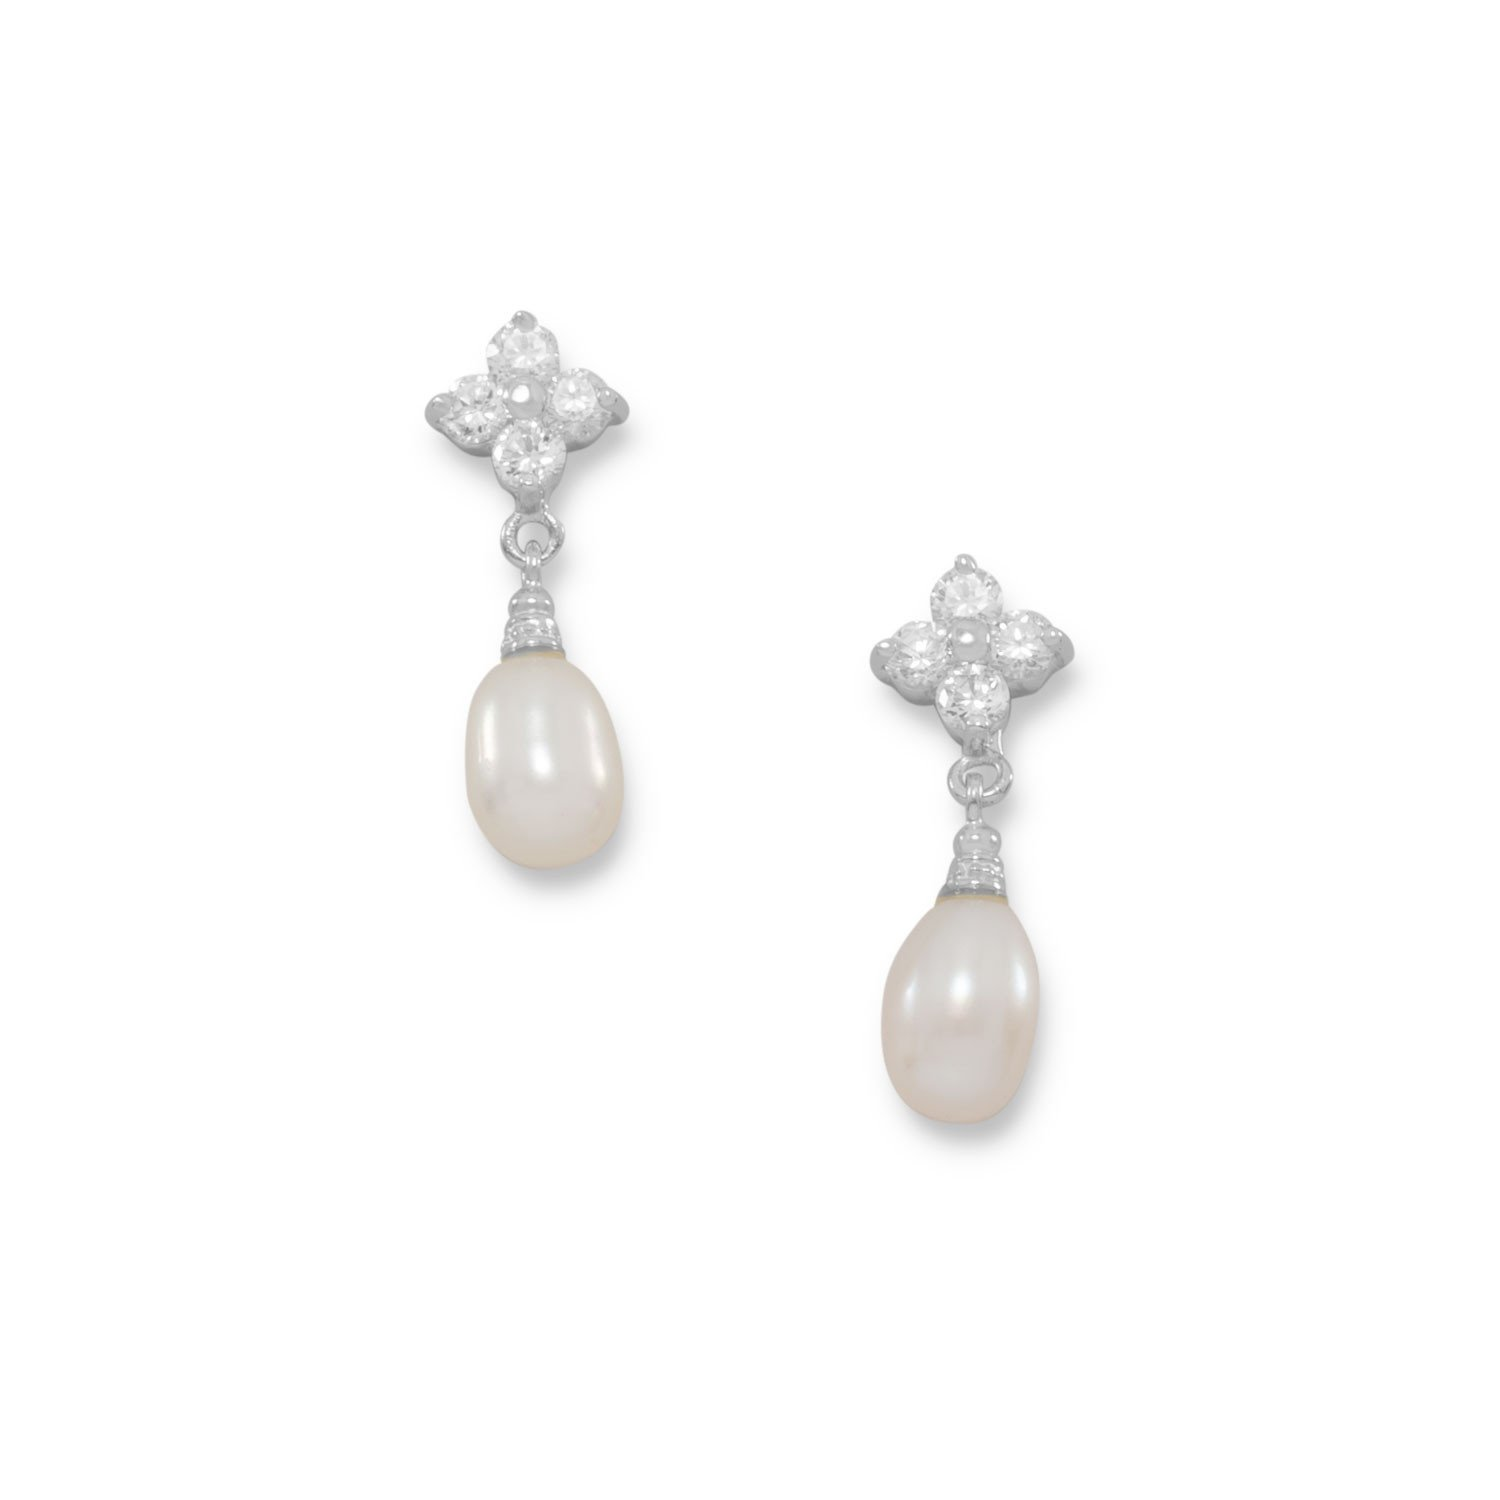 Rhodium Plated CZ Flower and Cultured Freshwater Pearl Post Earrings